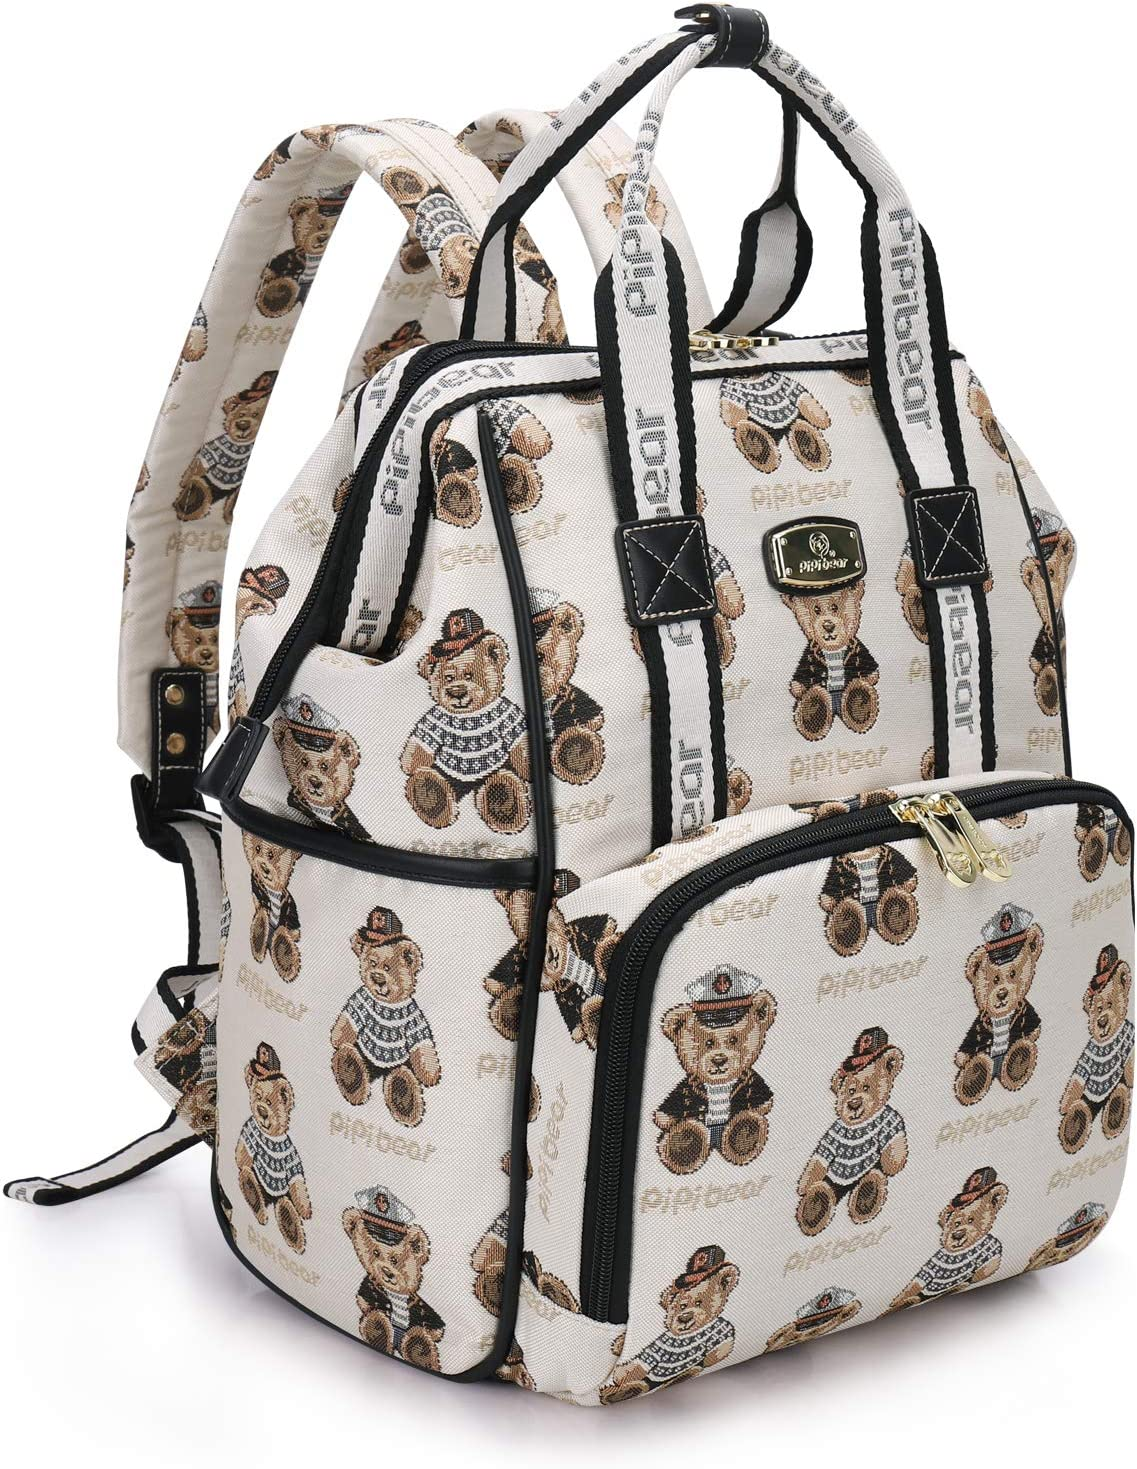 Pipi bear Changing Bag Backpack Stylish Jacquard Baby Travel Back Pack Nappy Changing Bag for Mom